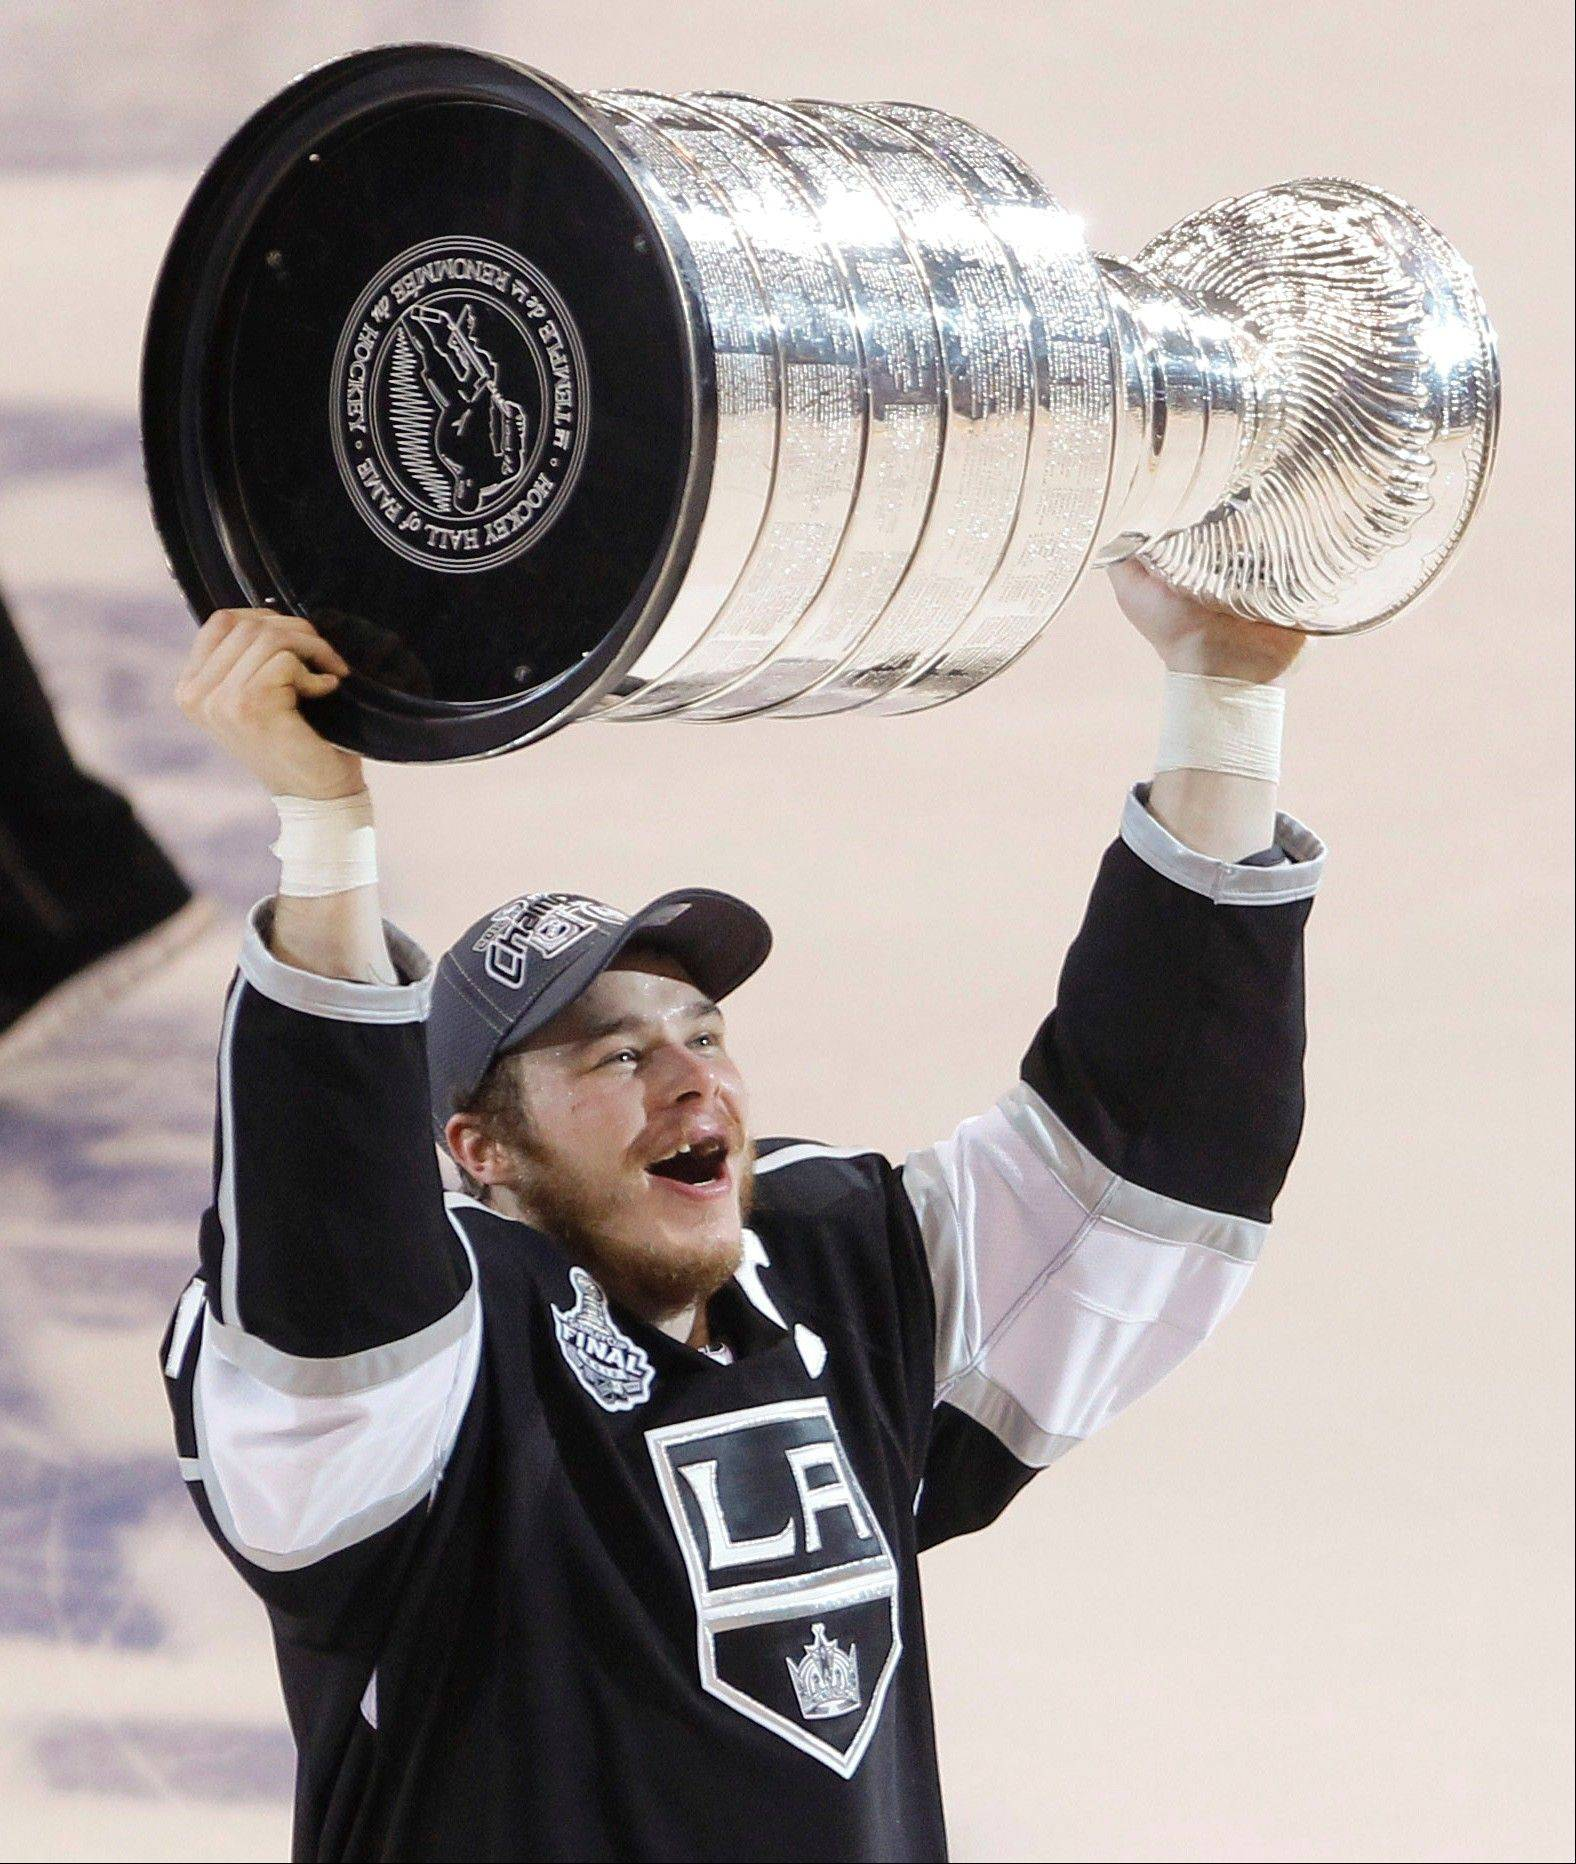 Los Angeles Kings captain Dustin Brown holds up the Stanley Cup Monday after the Kings beat the New Jersey Devils 6-1 during Game 6 of the Stanley Cup Finals.